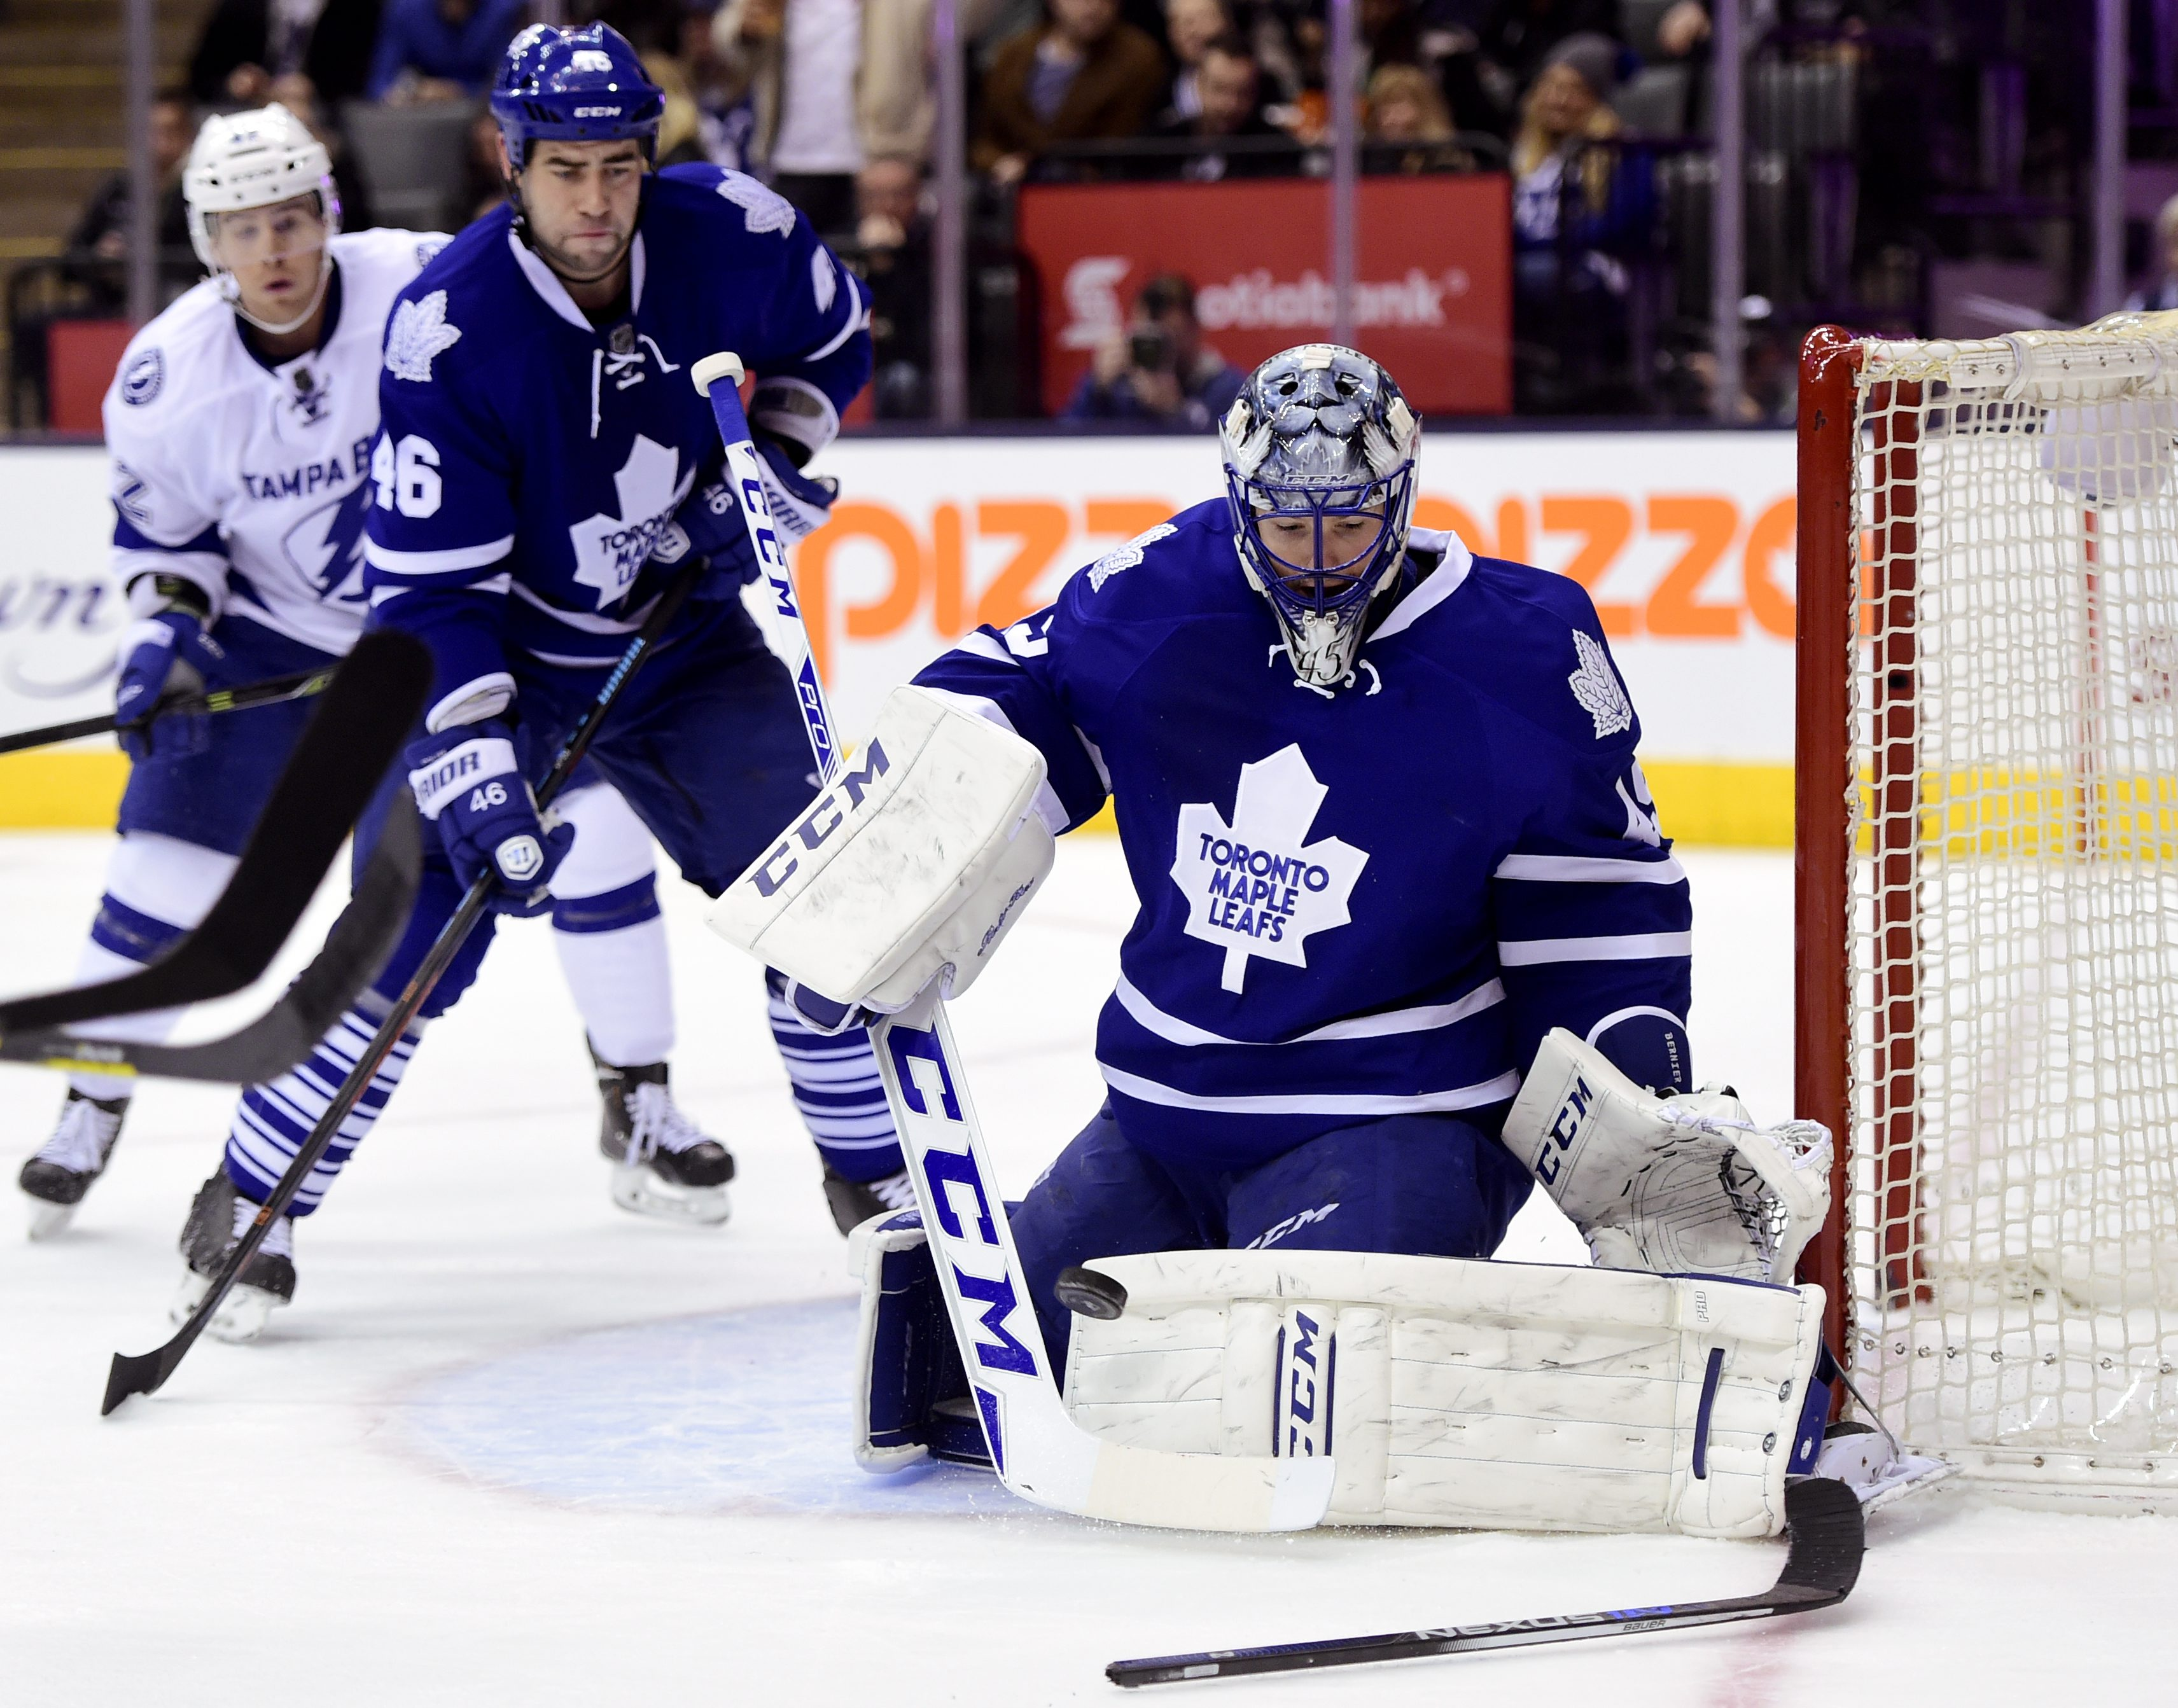 Toronto Maple Leafs' goalie Jonathan Bernier(45) makes the stop against the Tampa Bay Lightning during the third period of an NHL hockey game in Toronto, Tuesday, Dec. 15, 2015. (Frank Gunn/The Canadian Press via AP) MANDATORY CREDIT